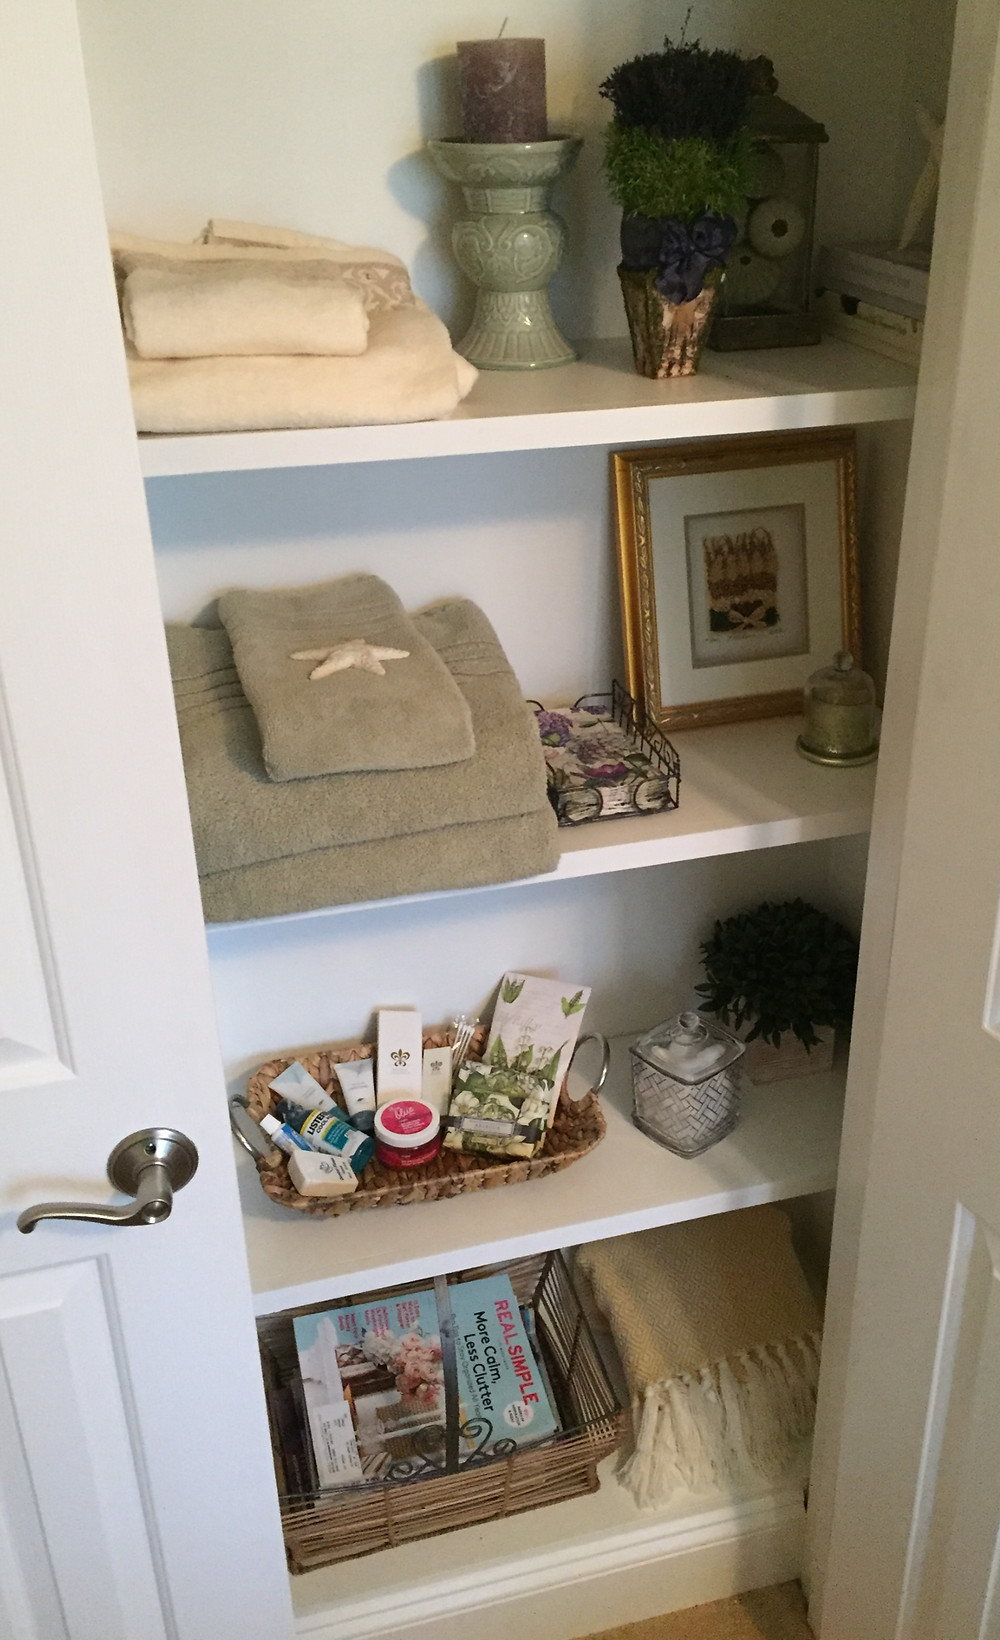 Closet shelves with towels, magazines and toiletries